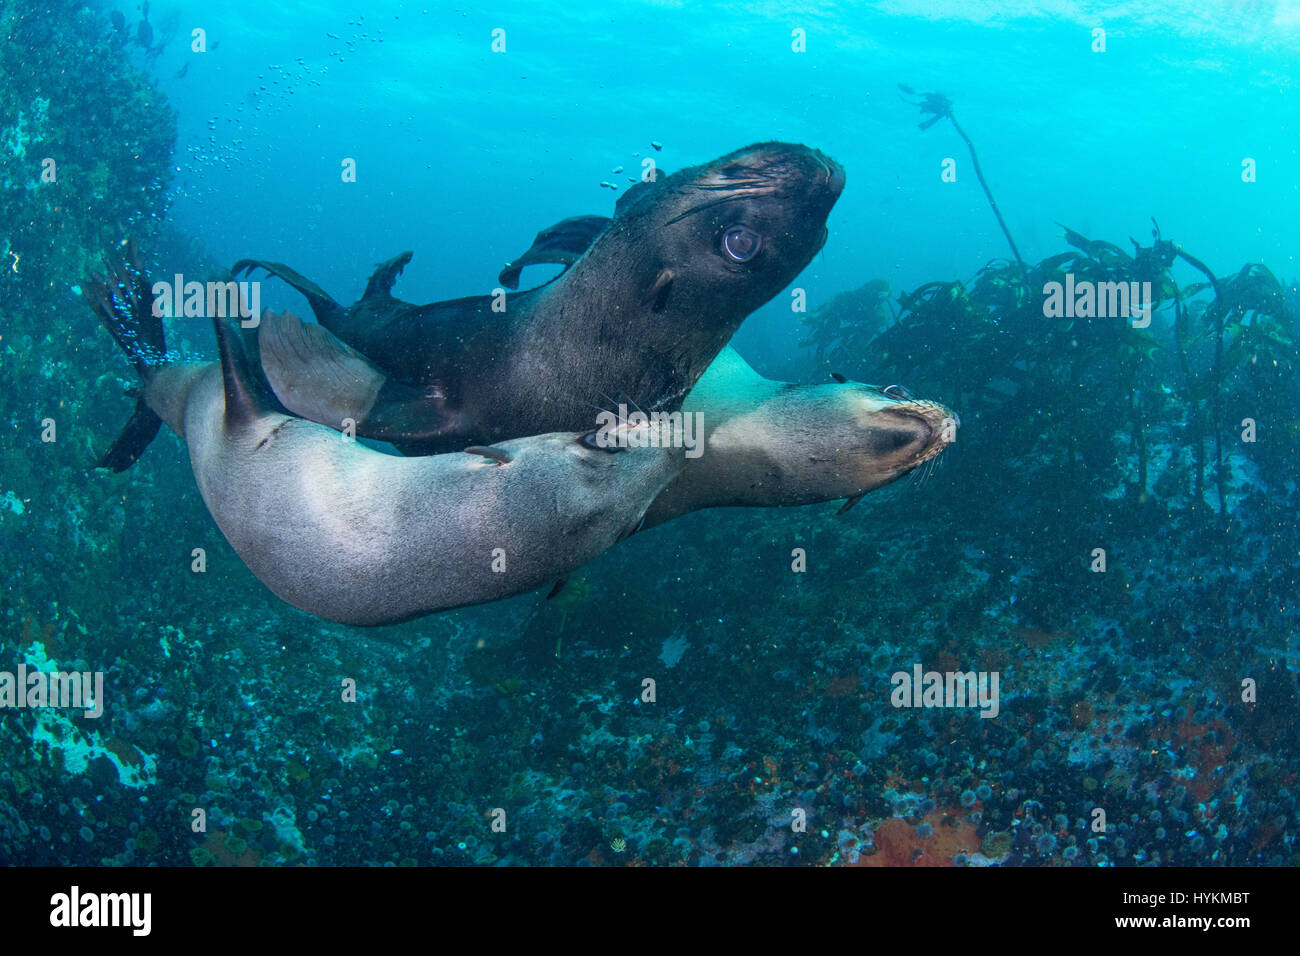 SIMON'S TOWN, SOUTH AFRICA: ONE PLAYFUL seal was enjoying itself so much it picked up a starfish with its mouth - Stock Image